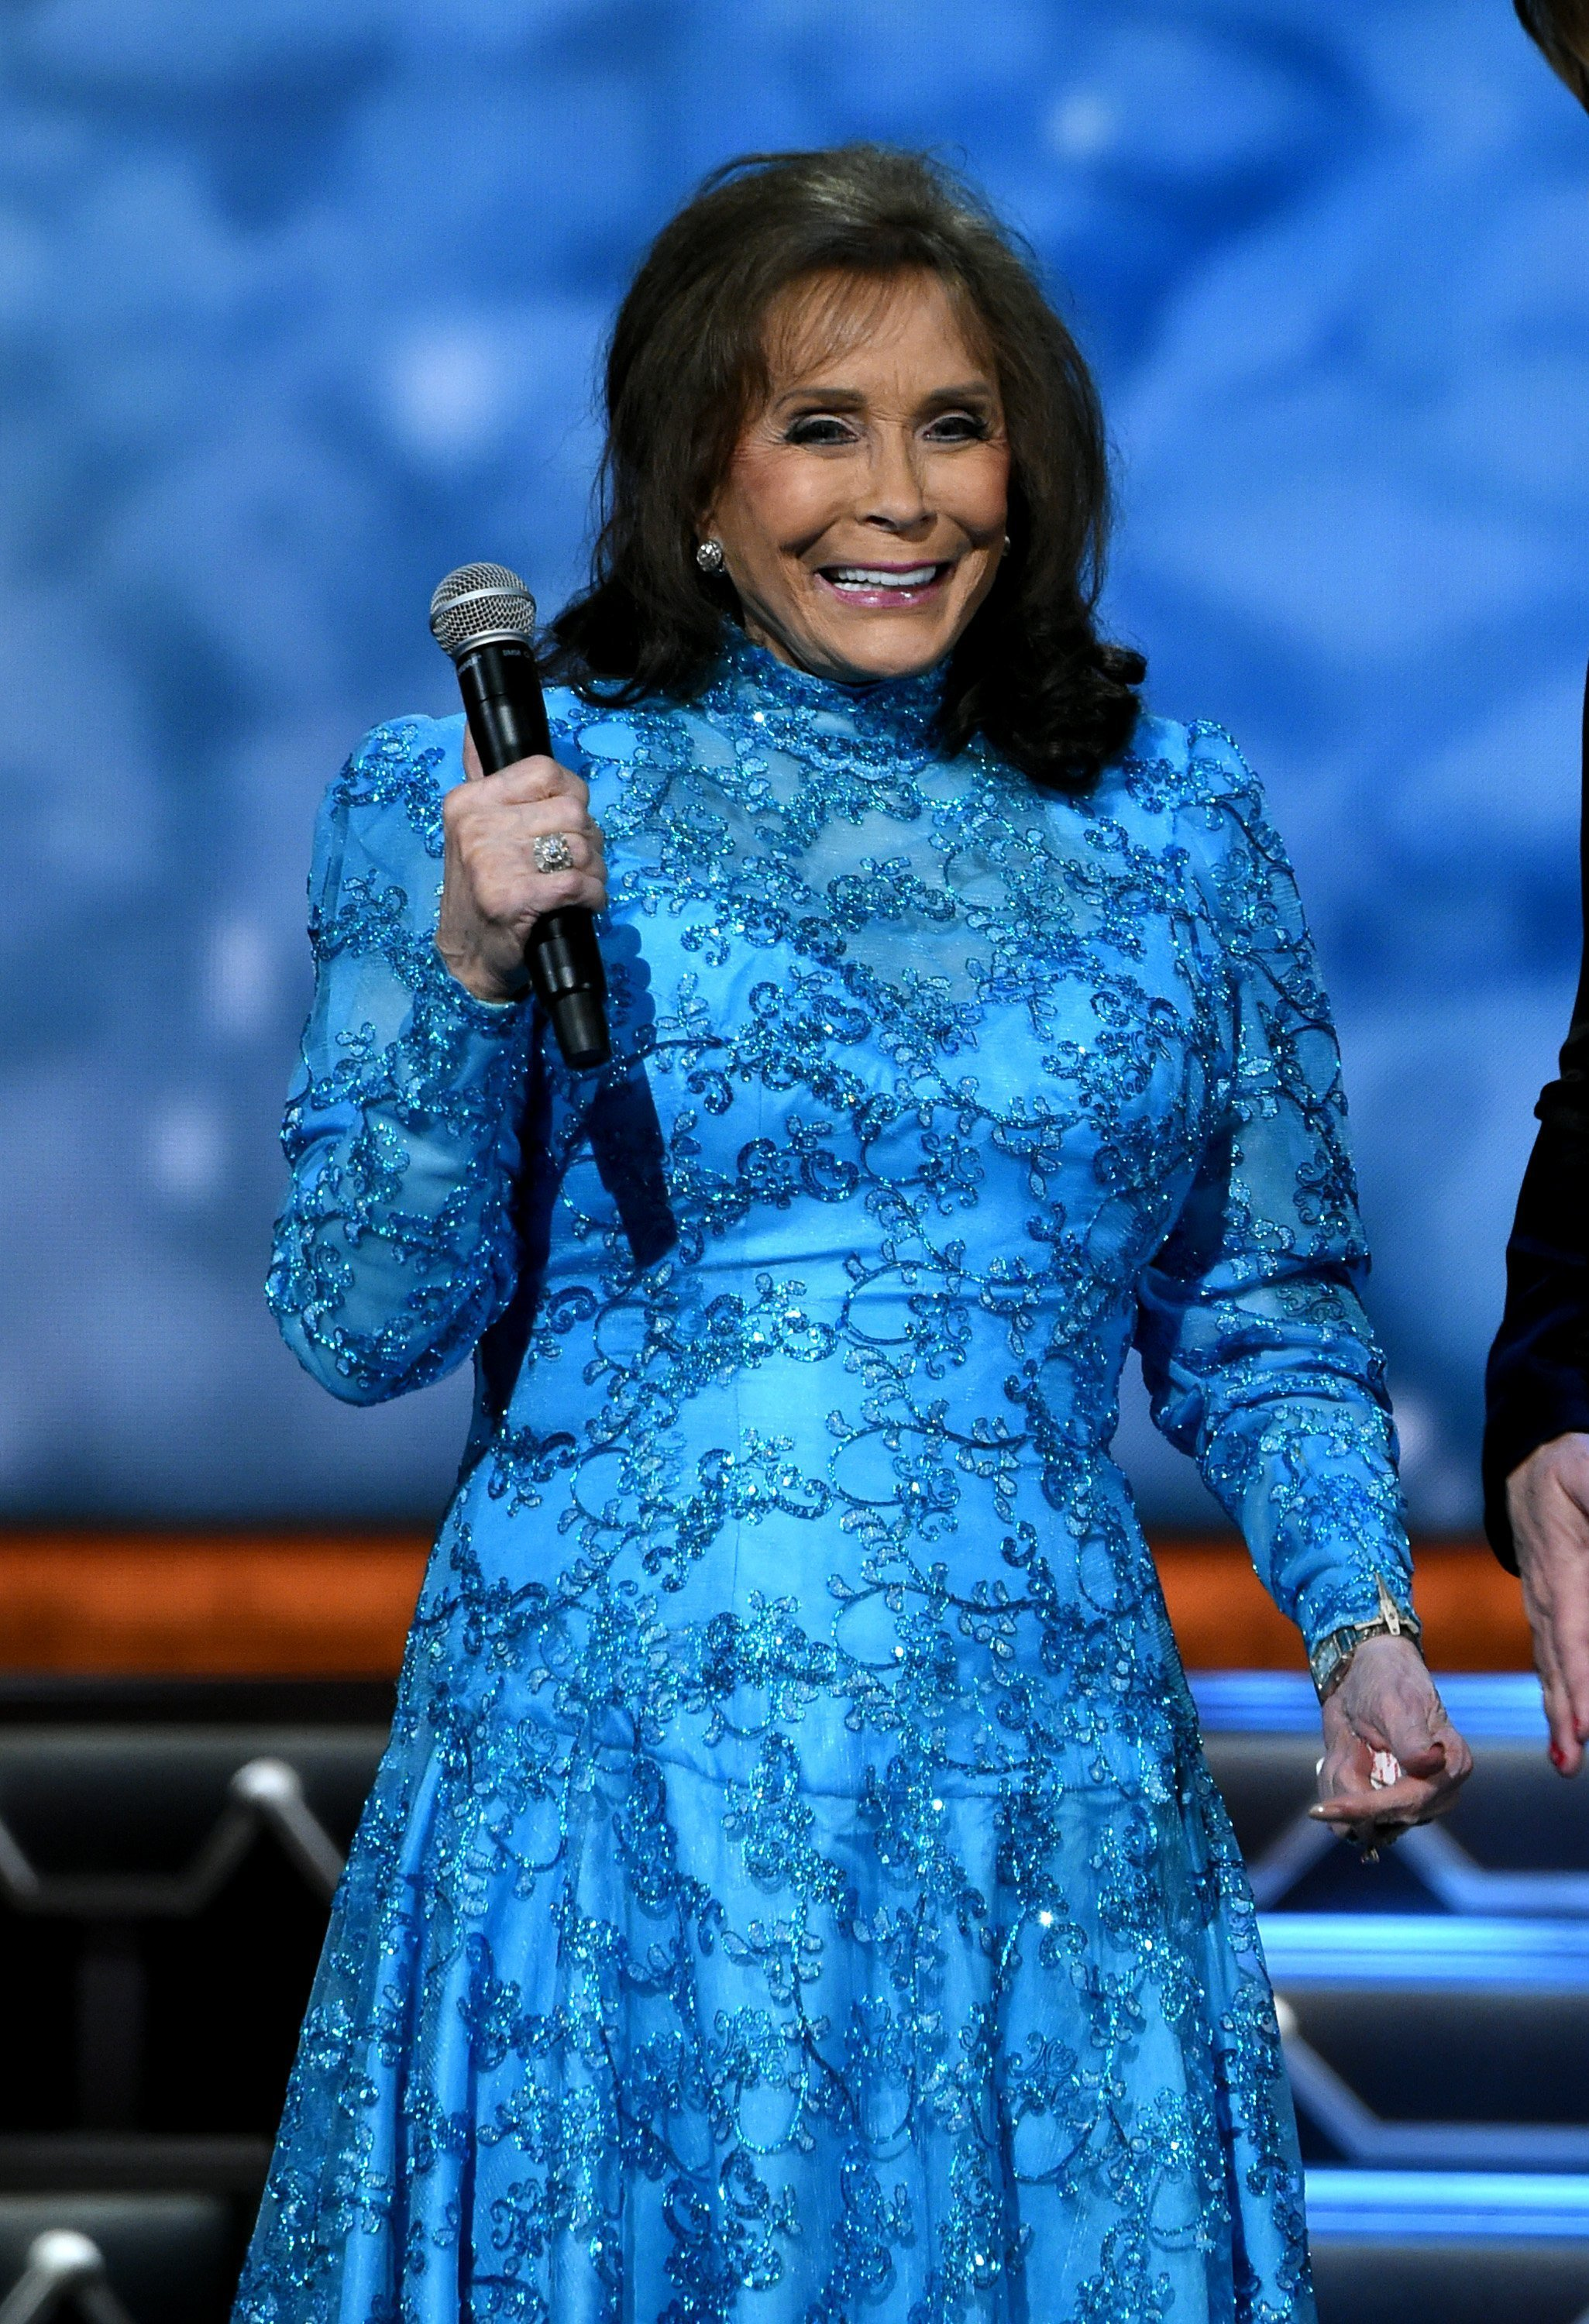 Singer-songwriter Loretta Lynn performs on stage during the CMA 2016 Country Christmas on November 8, 2016, in Nashville, Tennessee. | Source: Getty Images.